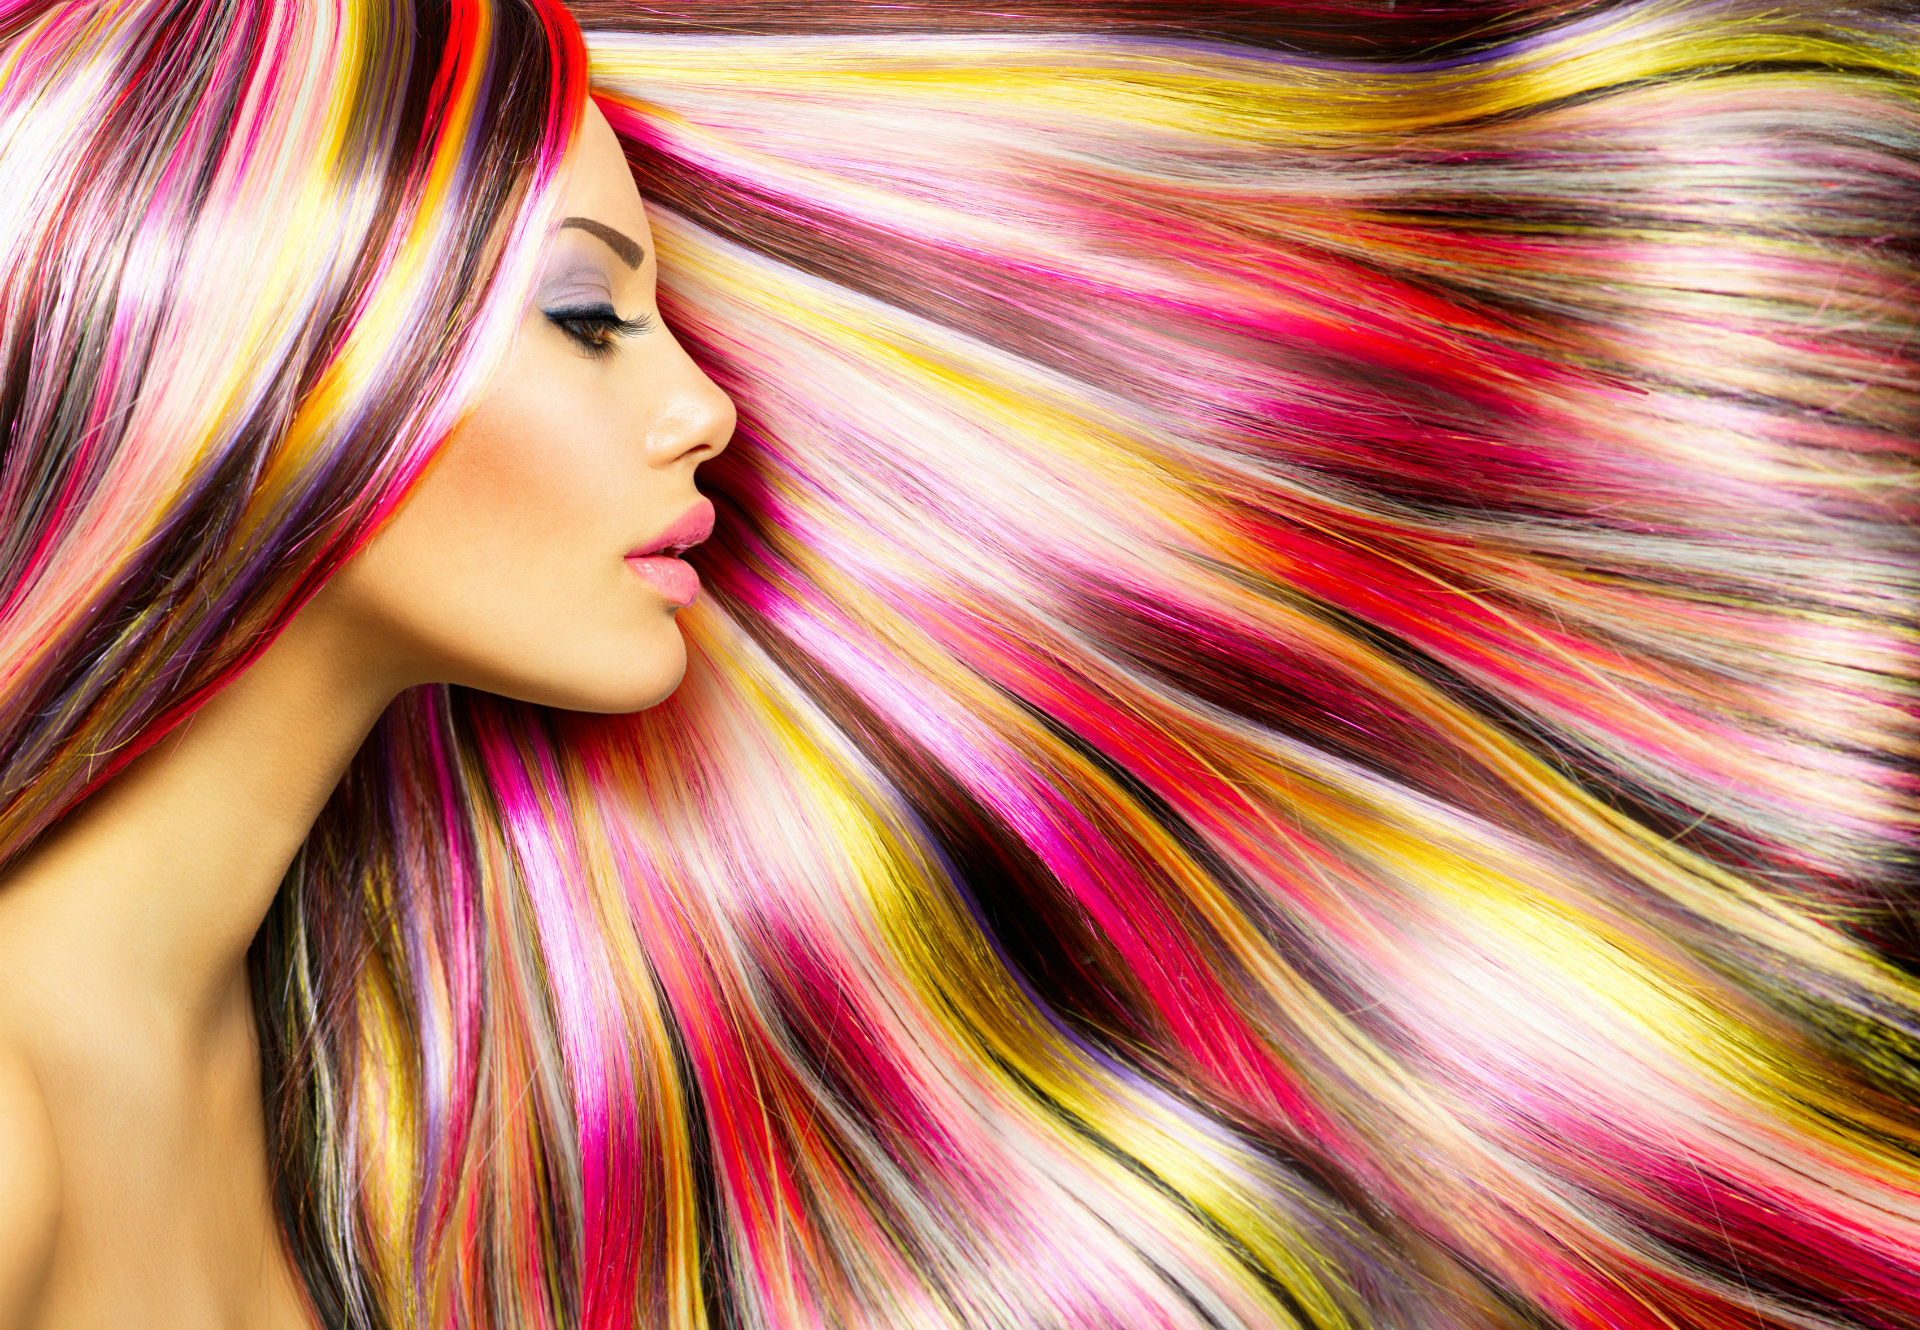 Boston Hair Color Services - No One Does it Better than Amaci